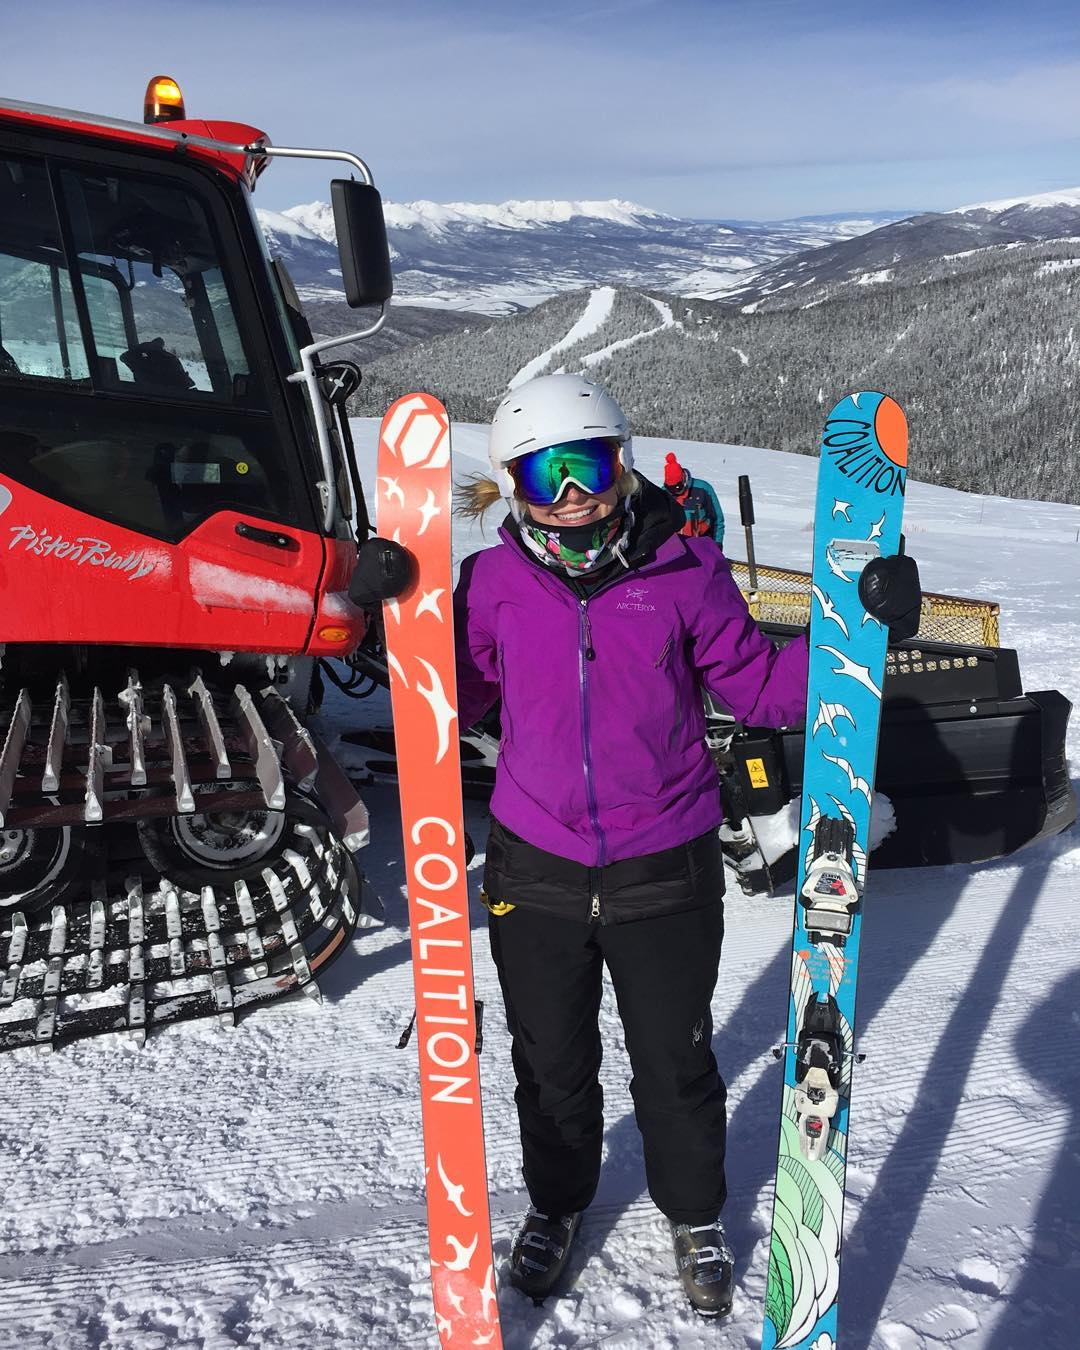 Stacey Patterson was all smiles after testing the #SOS at @keystone_resort this week! #extremefaceshots #sisterhoodofshred